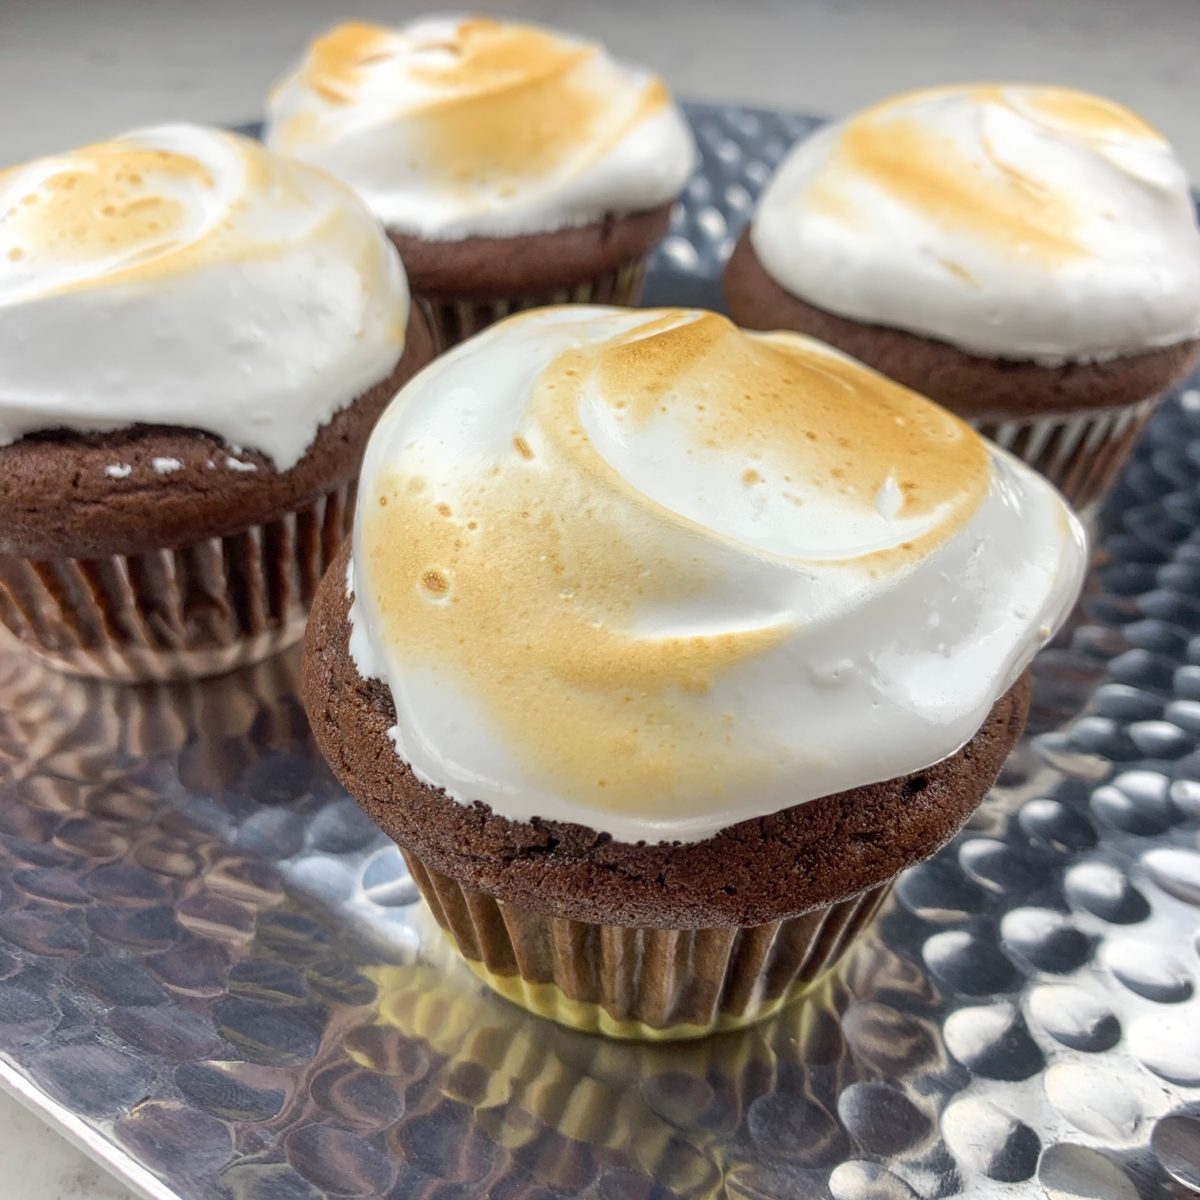 S'more cupcake recipe finished cupcakes ready to serve